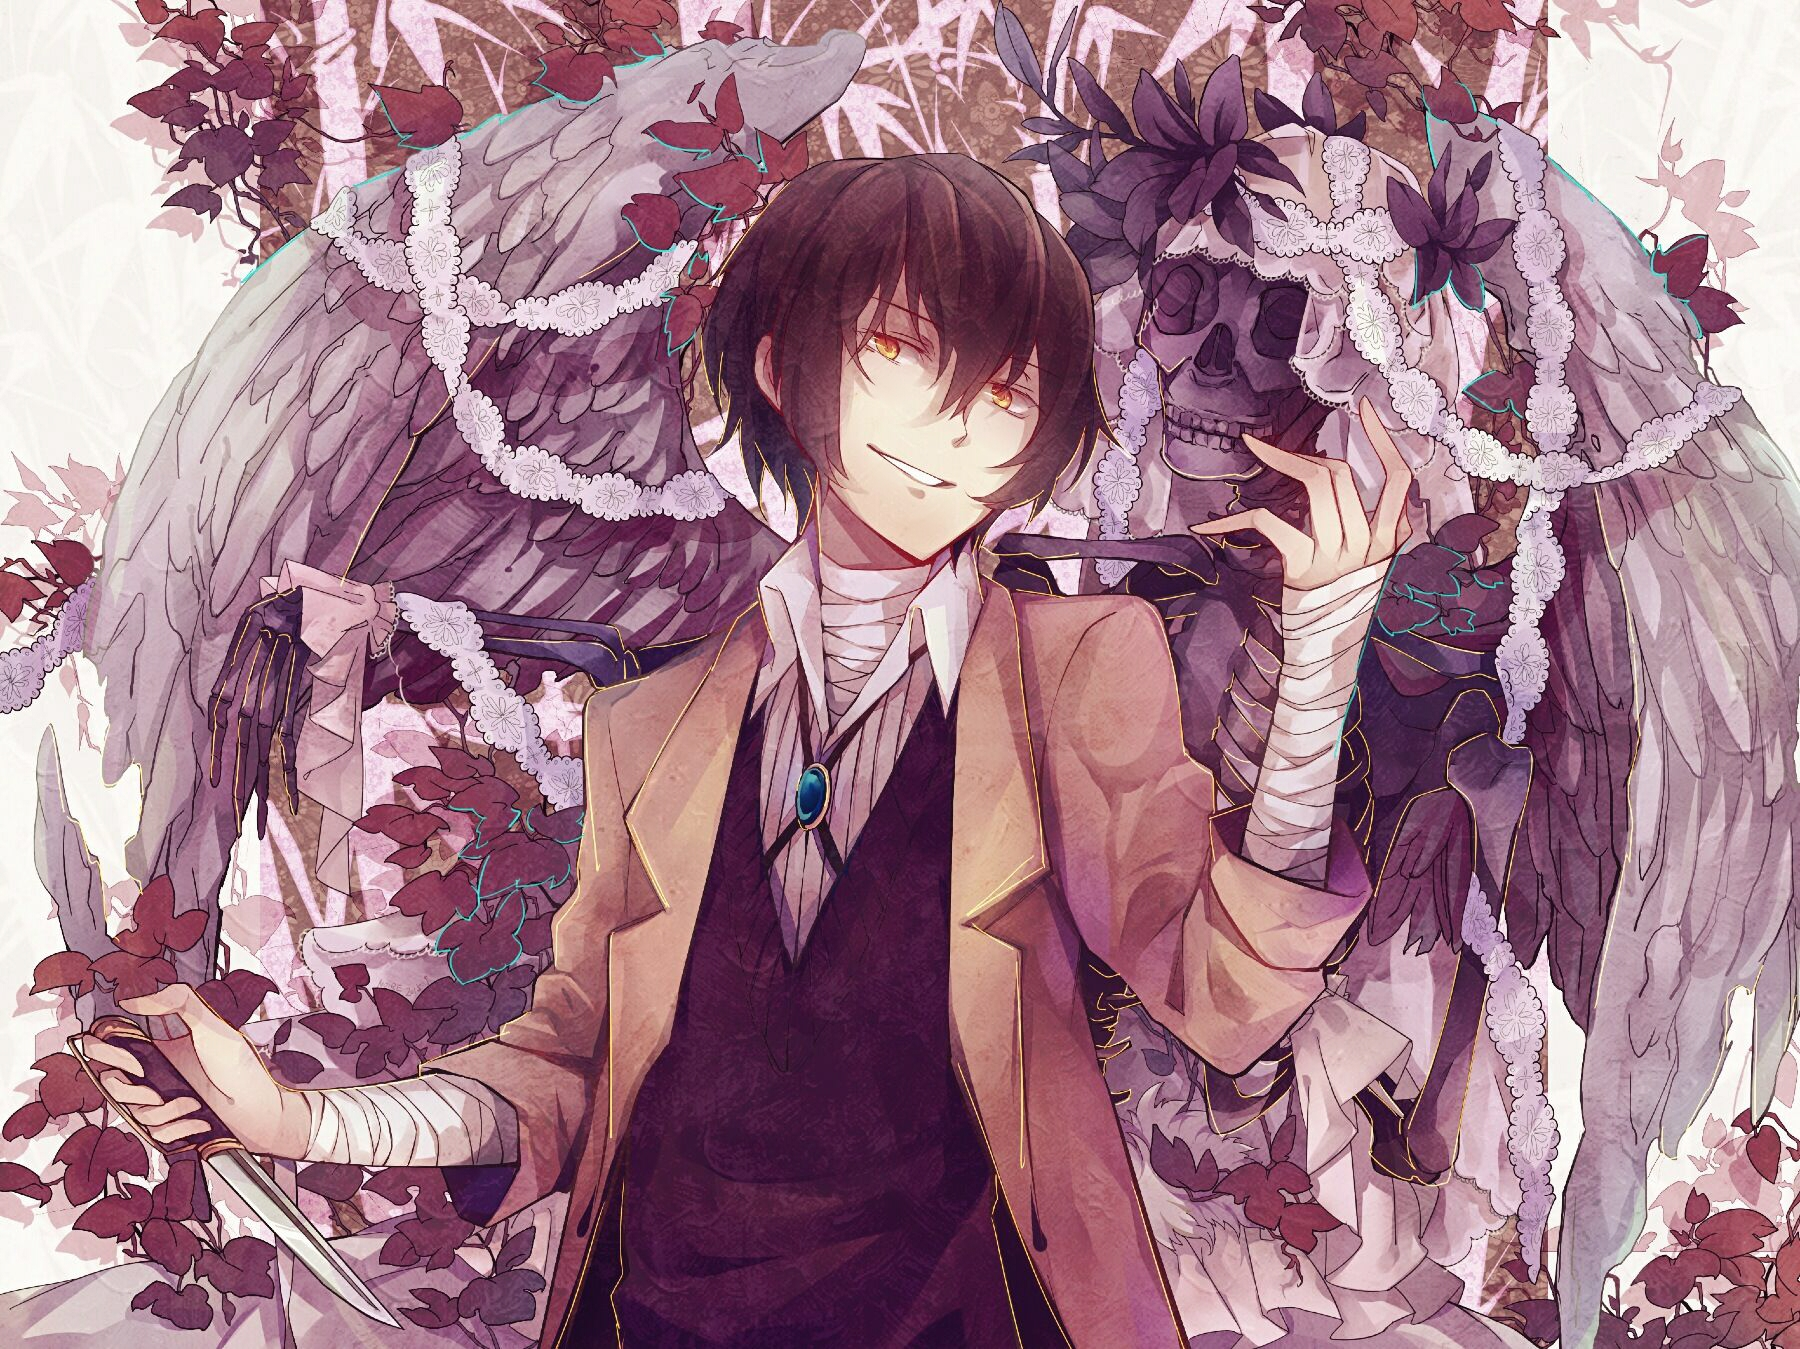 Bungou Stray Dogs, Skulls, Wings Of Freedom, Osamu Dazai